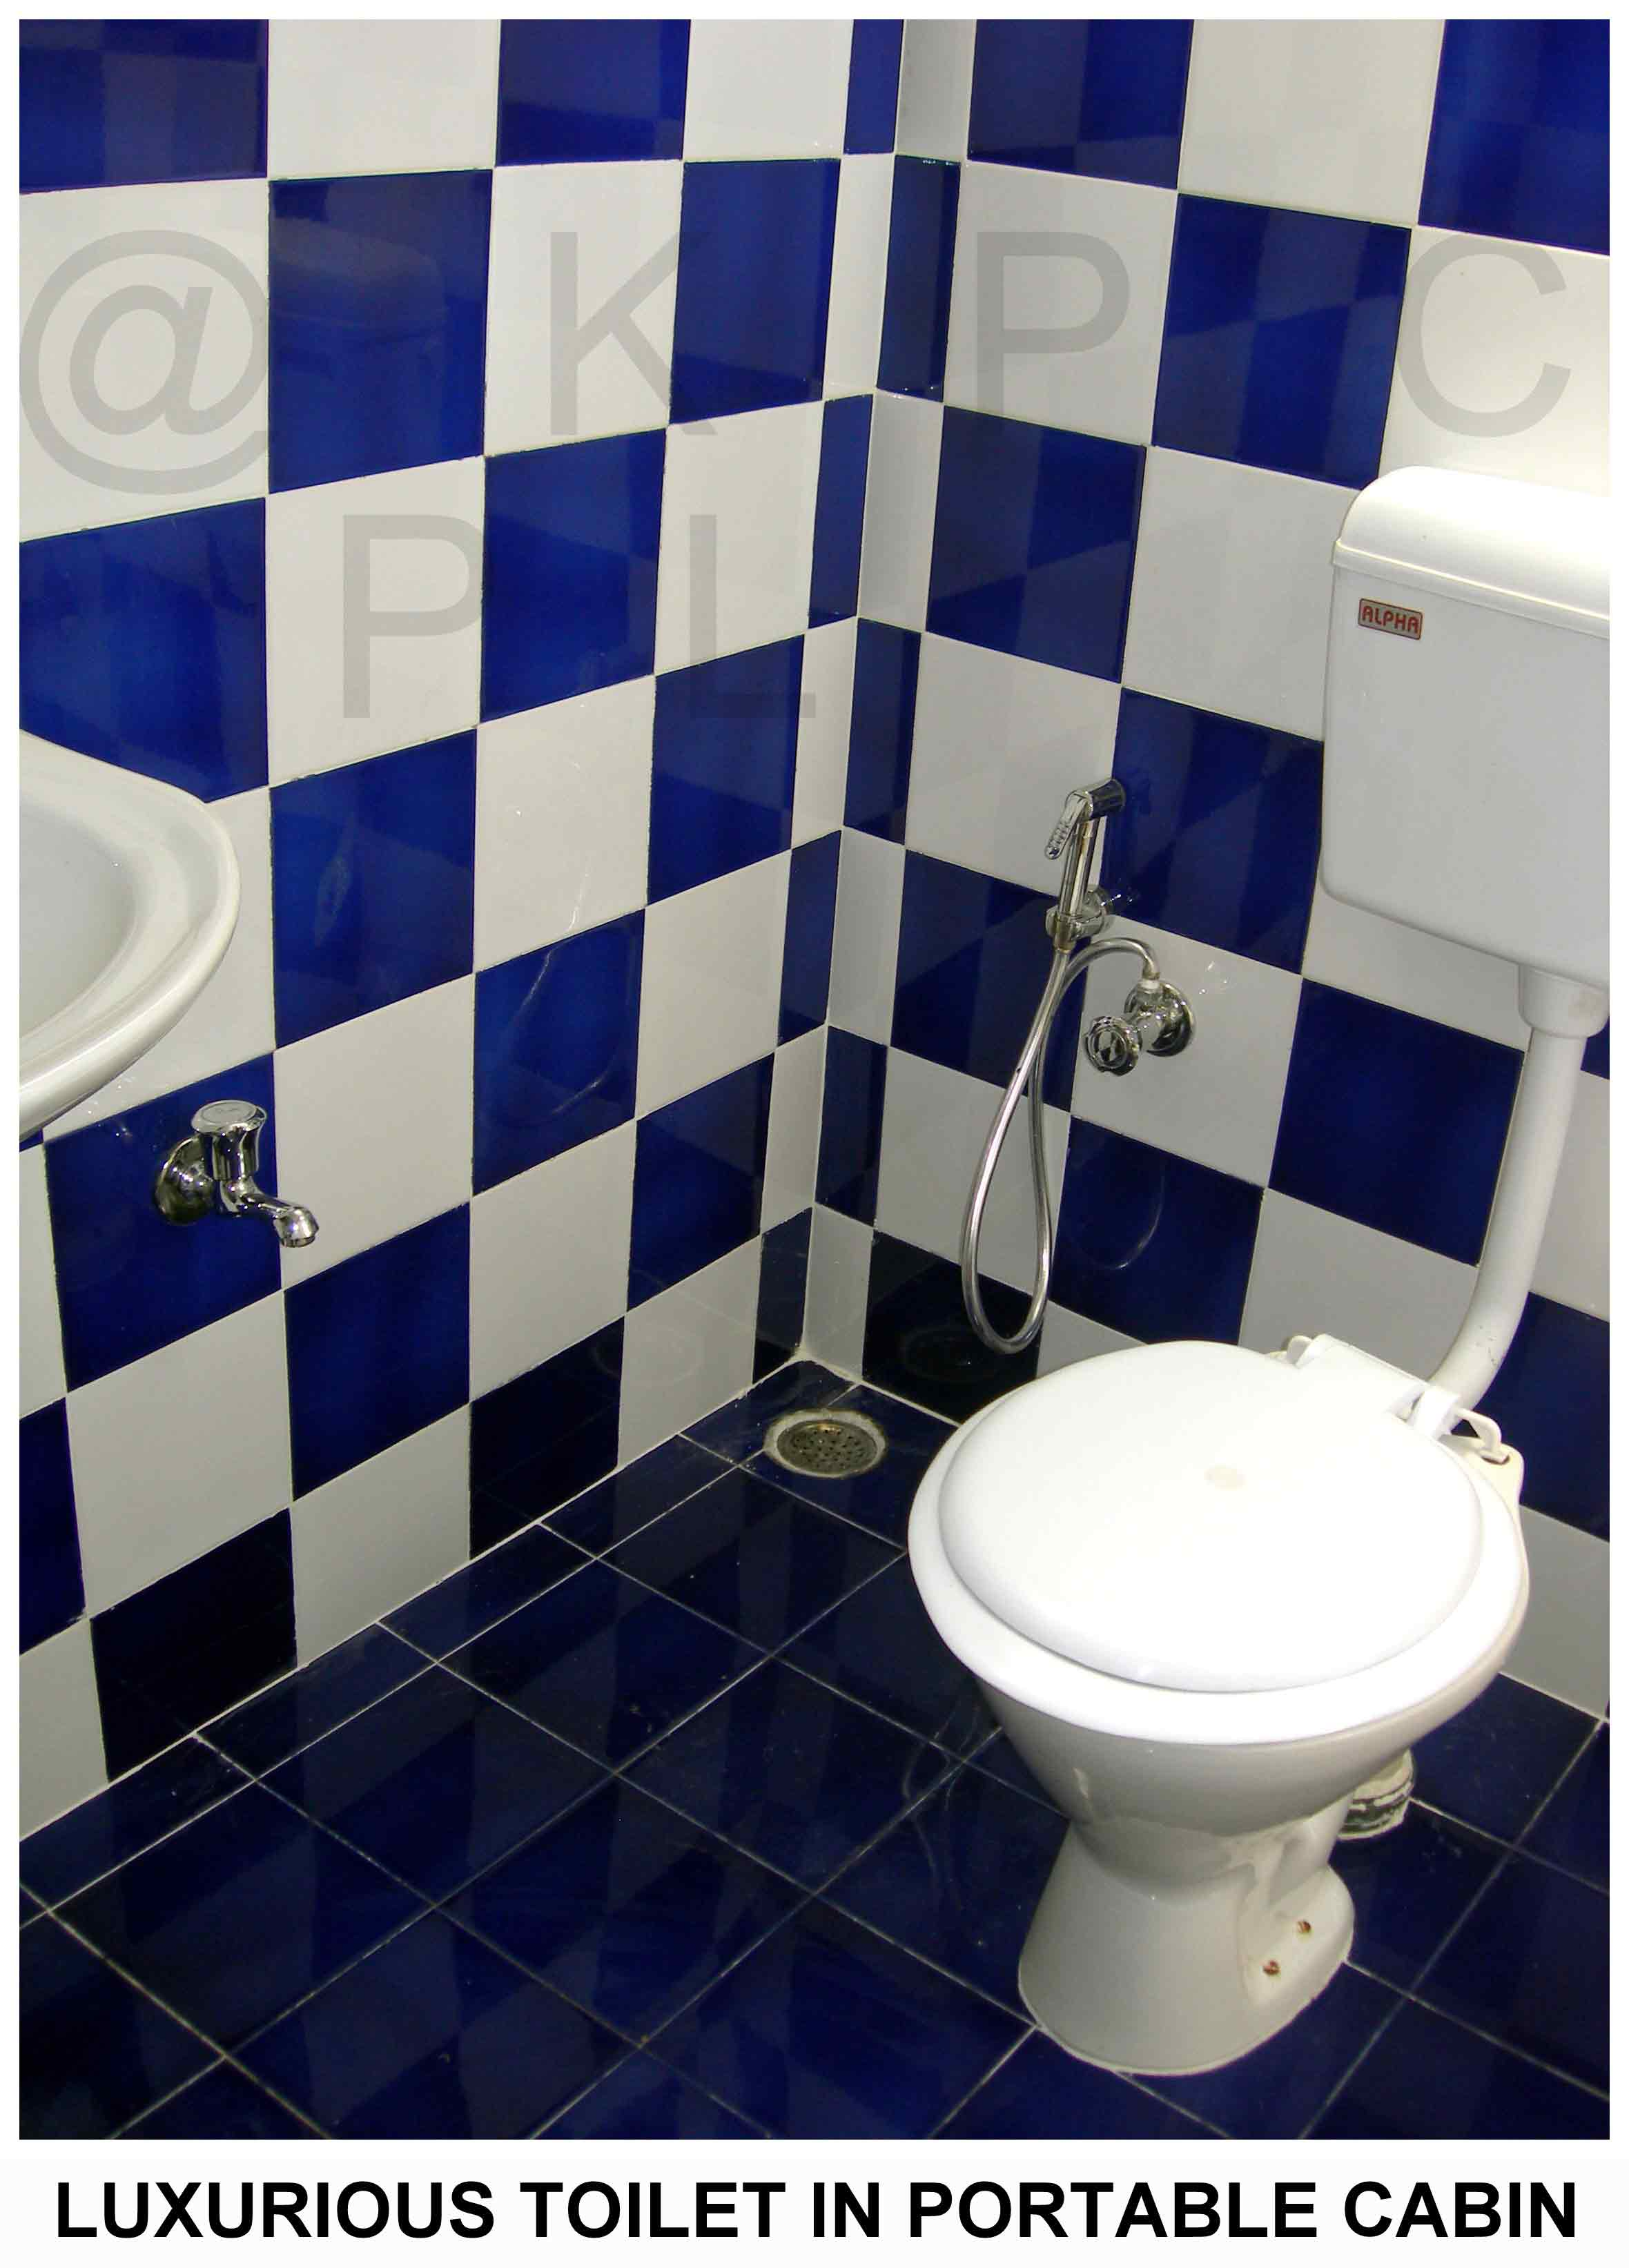 GRP Portable Toilet Block.    GRP Portable Toilet Block Description:  We offer the high quality of GRP Portable Toilet Block. Portable Toilet Blocks are manufactured by us with good quality which can sustain any weather even with low GRP cubicle is one of the traditional / conventional products which is widely used in Construction sites due to its light weight structure and low pricing and ready availability with water & waste tanks. These blocks are provided with necessary amenities such as wash basin, soap dish, extra water tap, tube light, exhaust fan, waterproof switch, GRP step, air vent etc. and an outlet which also allows you to connect with external water supplies and waste outlets. If Electricity, water and waste connection are provided externally, it would be an instant solution for all sites. Owing to its top-notch strength and durability features, this structure is widely demanded by our clients.    GRP Portable Toilet Block. Features:  •Good strength & load bearing capacity.  •Hygienic & spacious.  •Low maintenance.